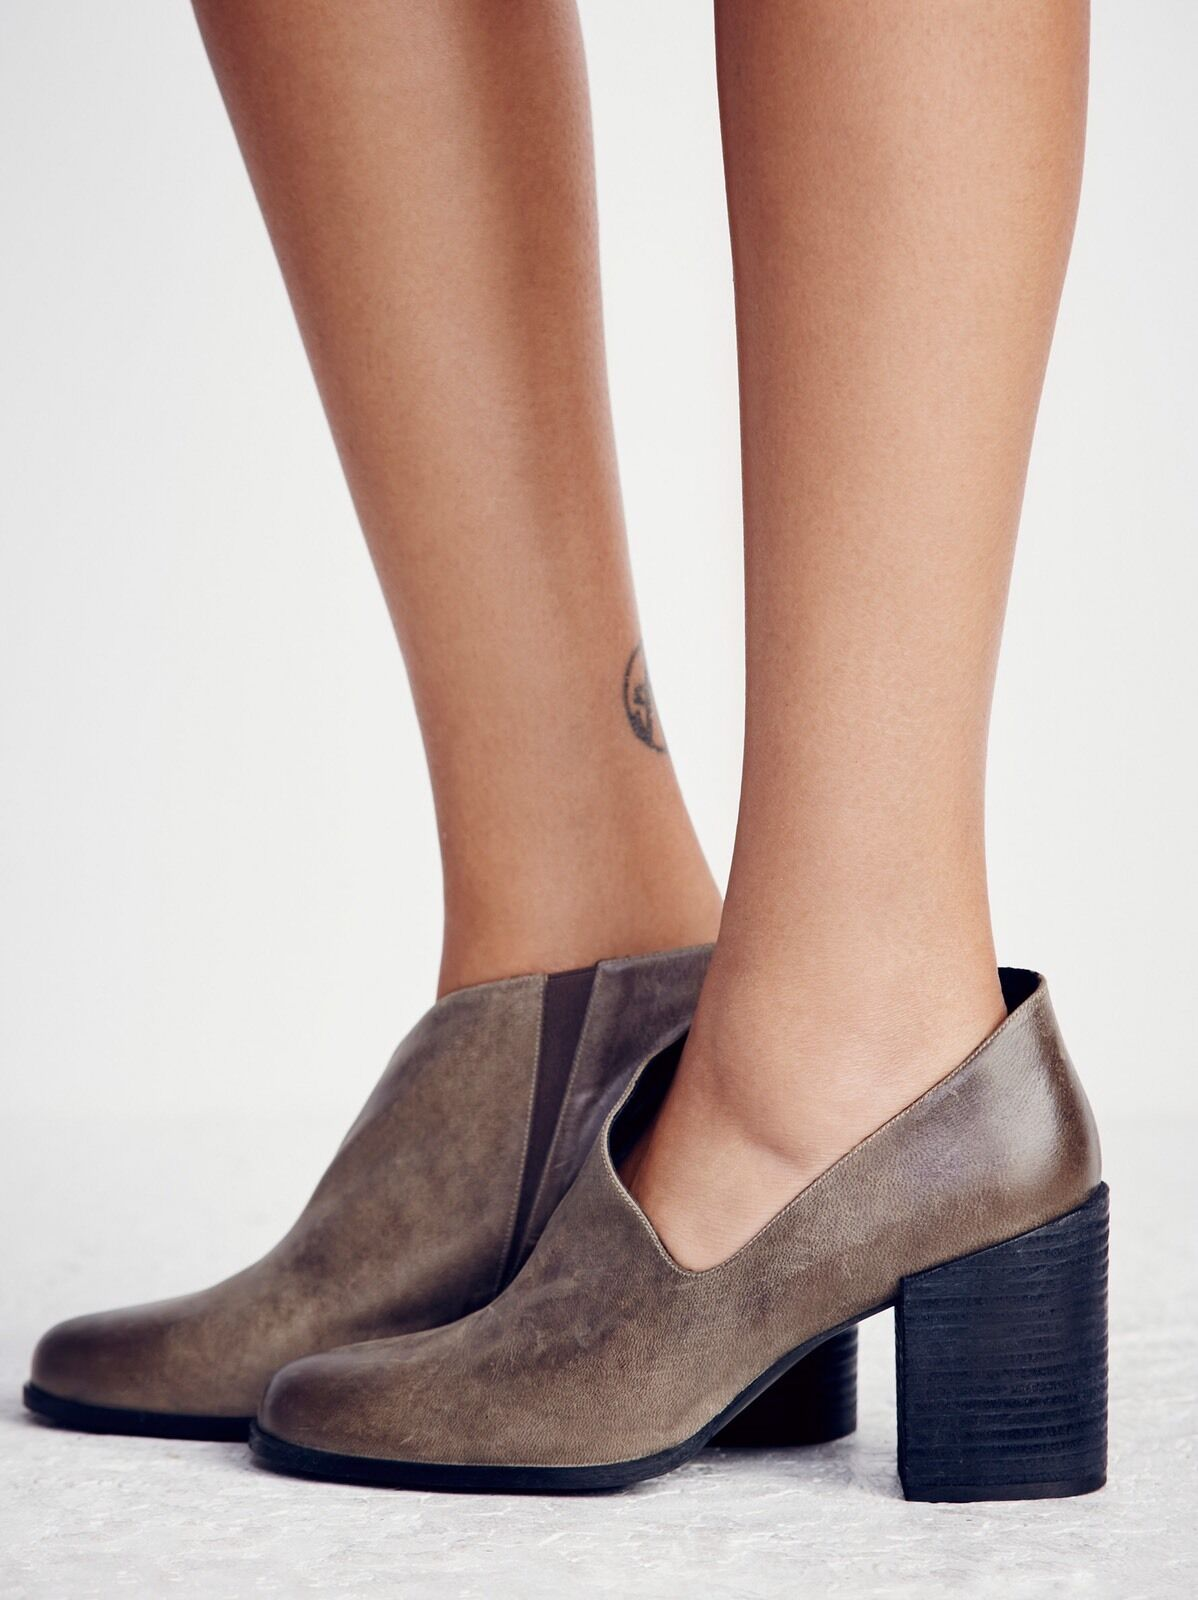 Free People Terrah Heel Boot Size 7 Leather New MSRP   198